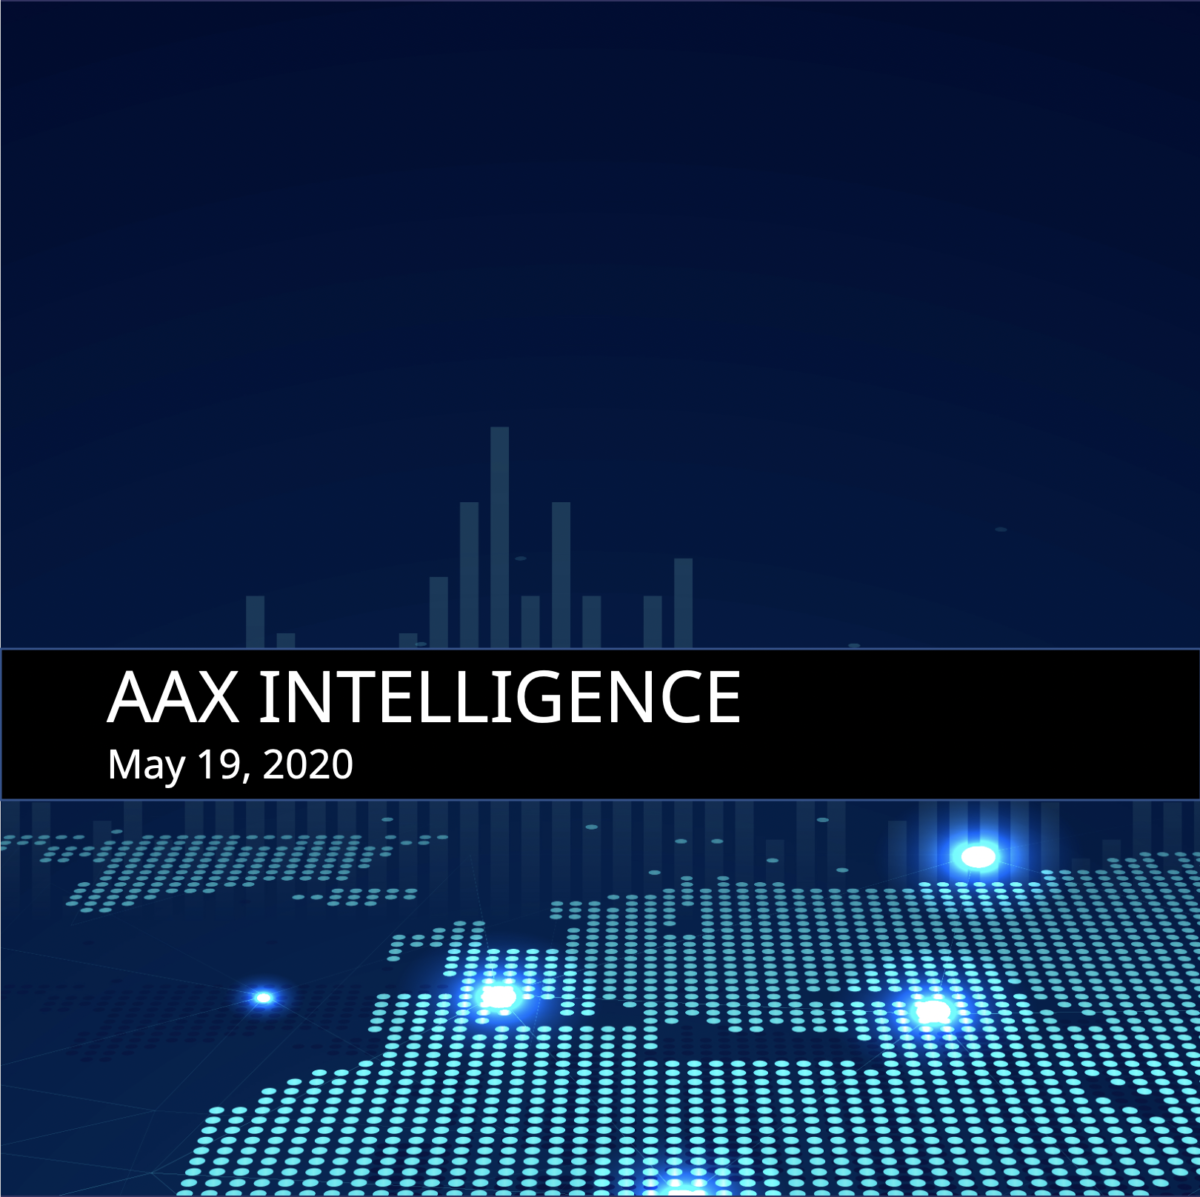 AAX Intelligence Report: 19 May, 2020